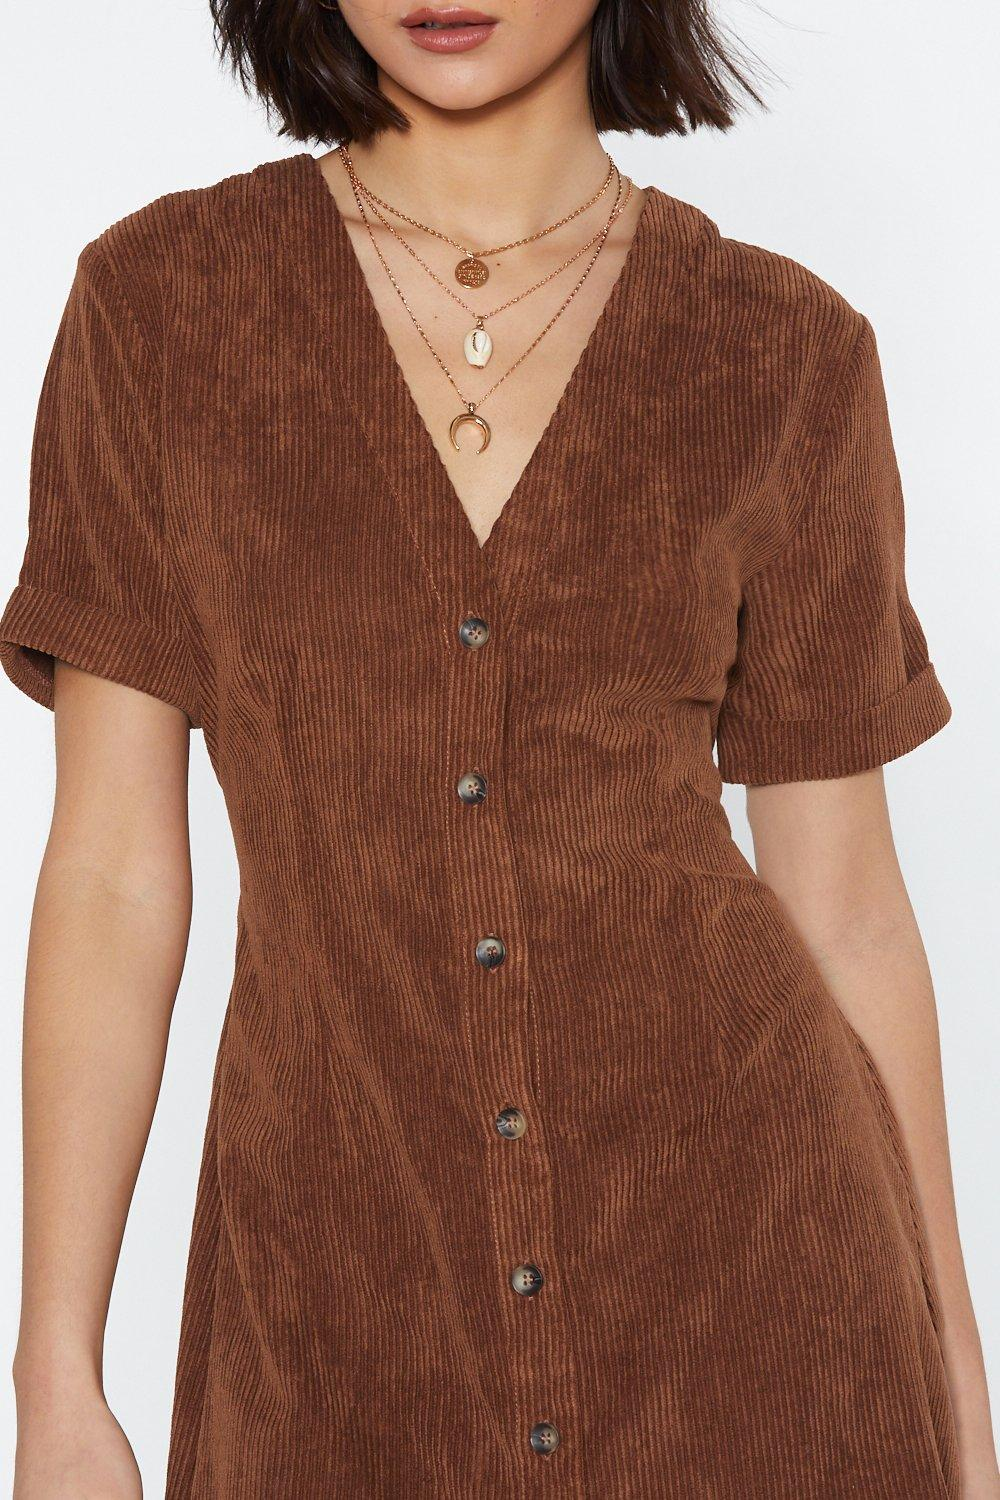 eb4e7f66a96 Womens Tan Button Cloud Nine Corduroy Dress.